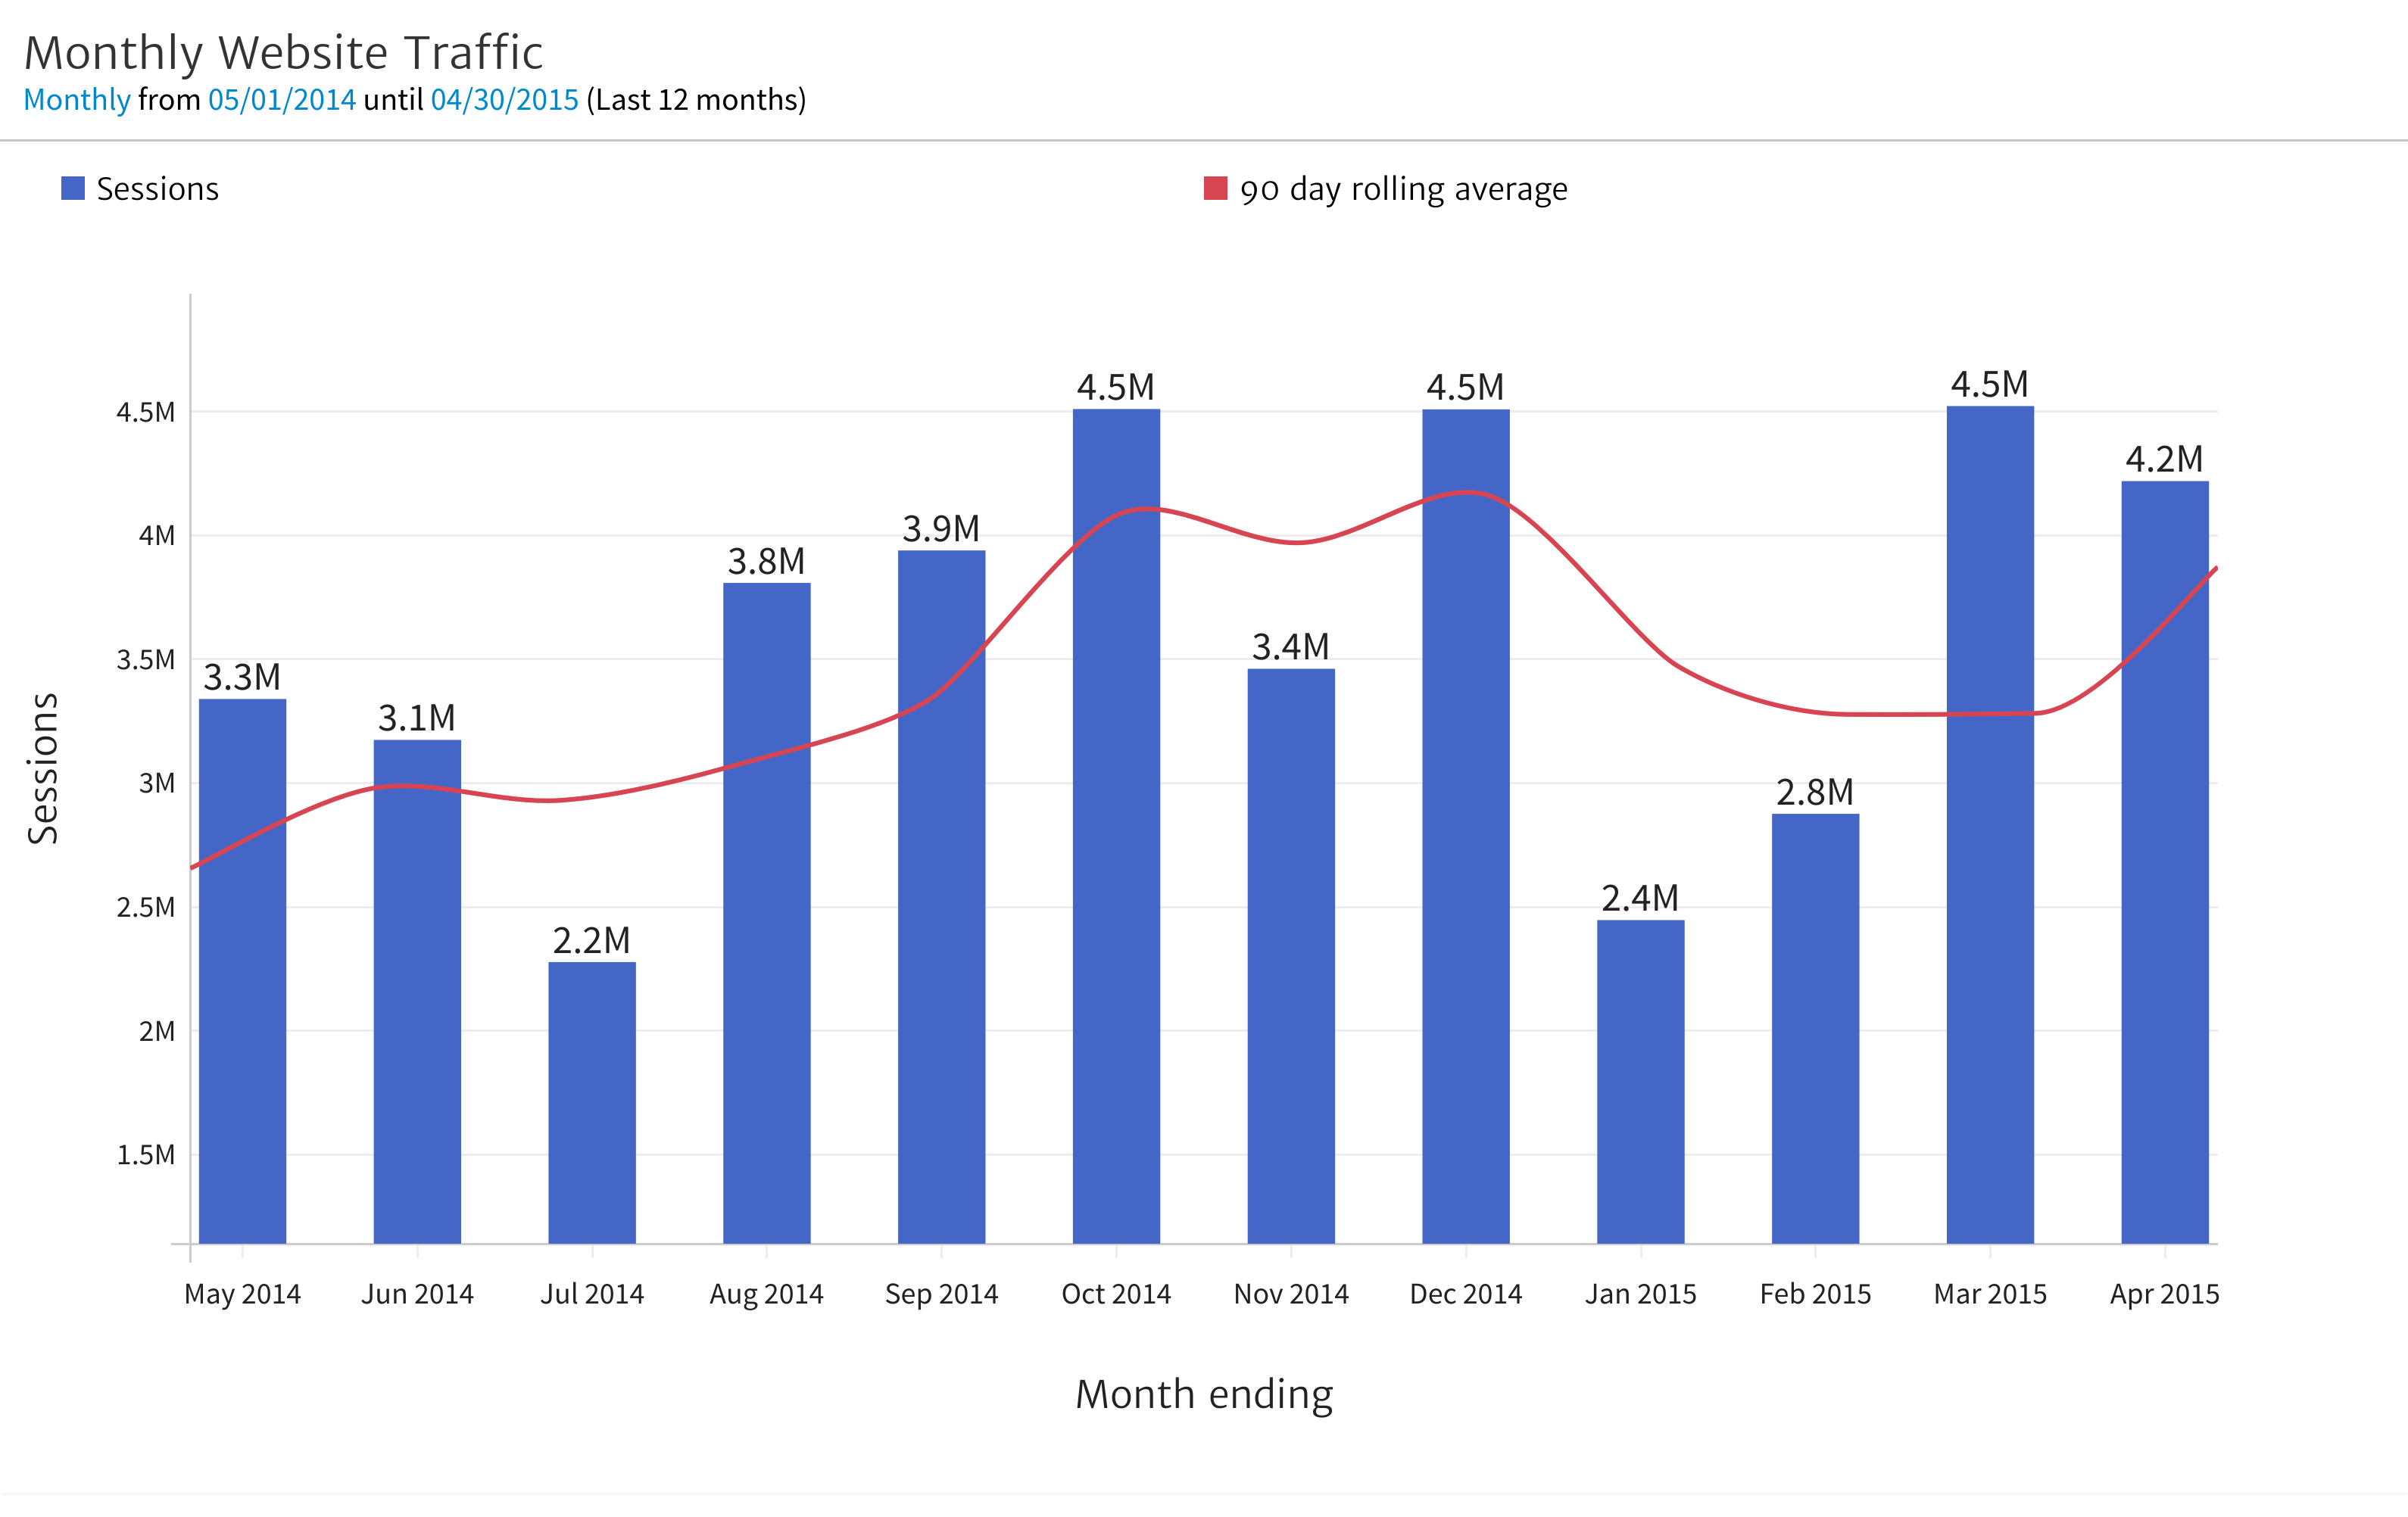 Megalytic Chart of 12 Month Traffic Pattern